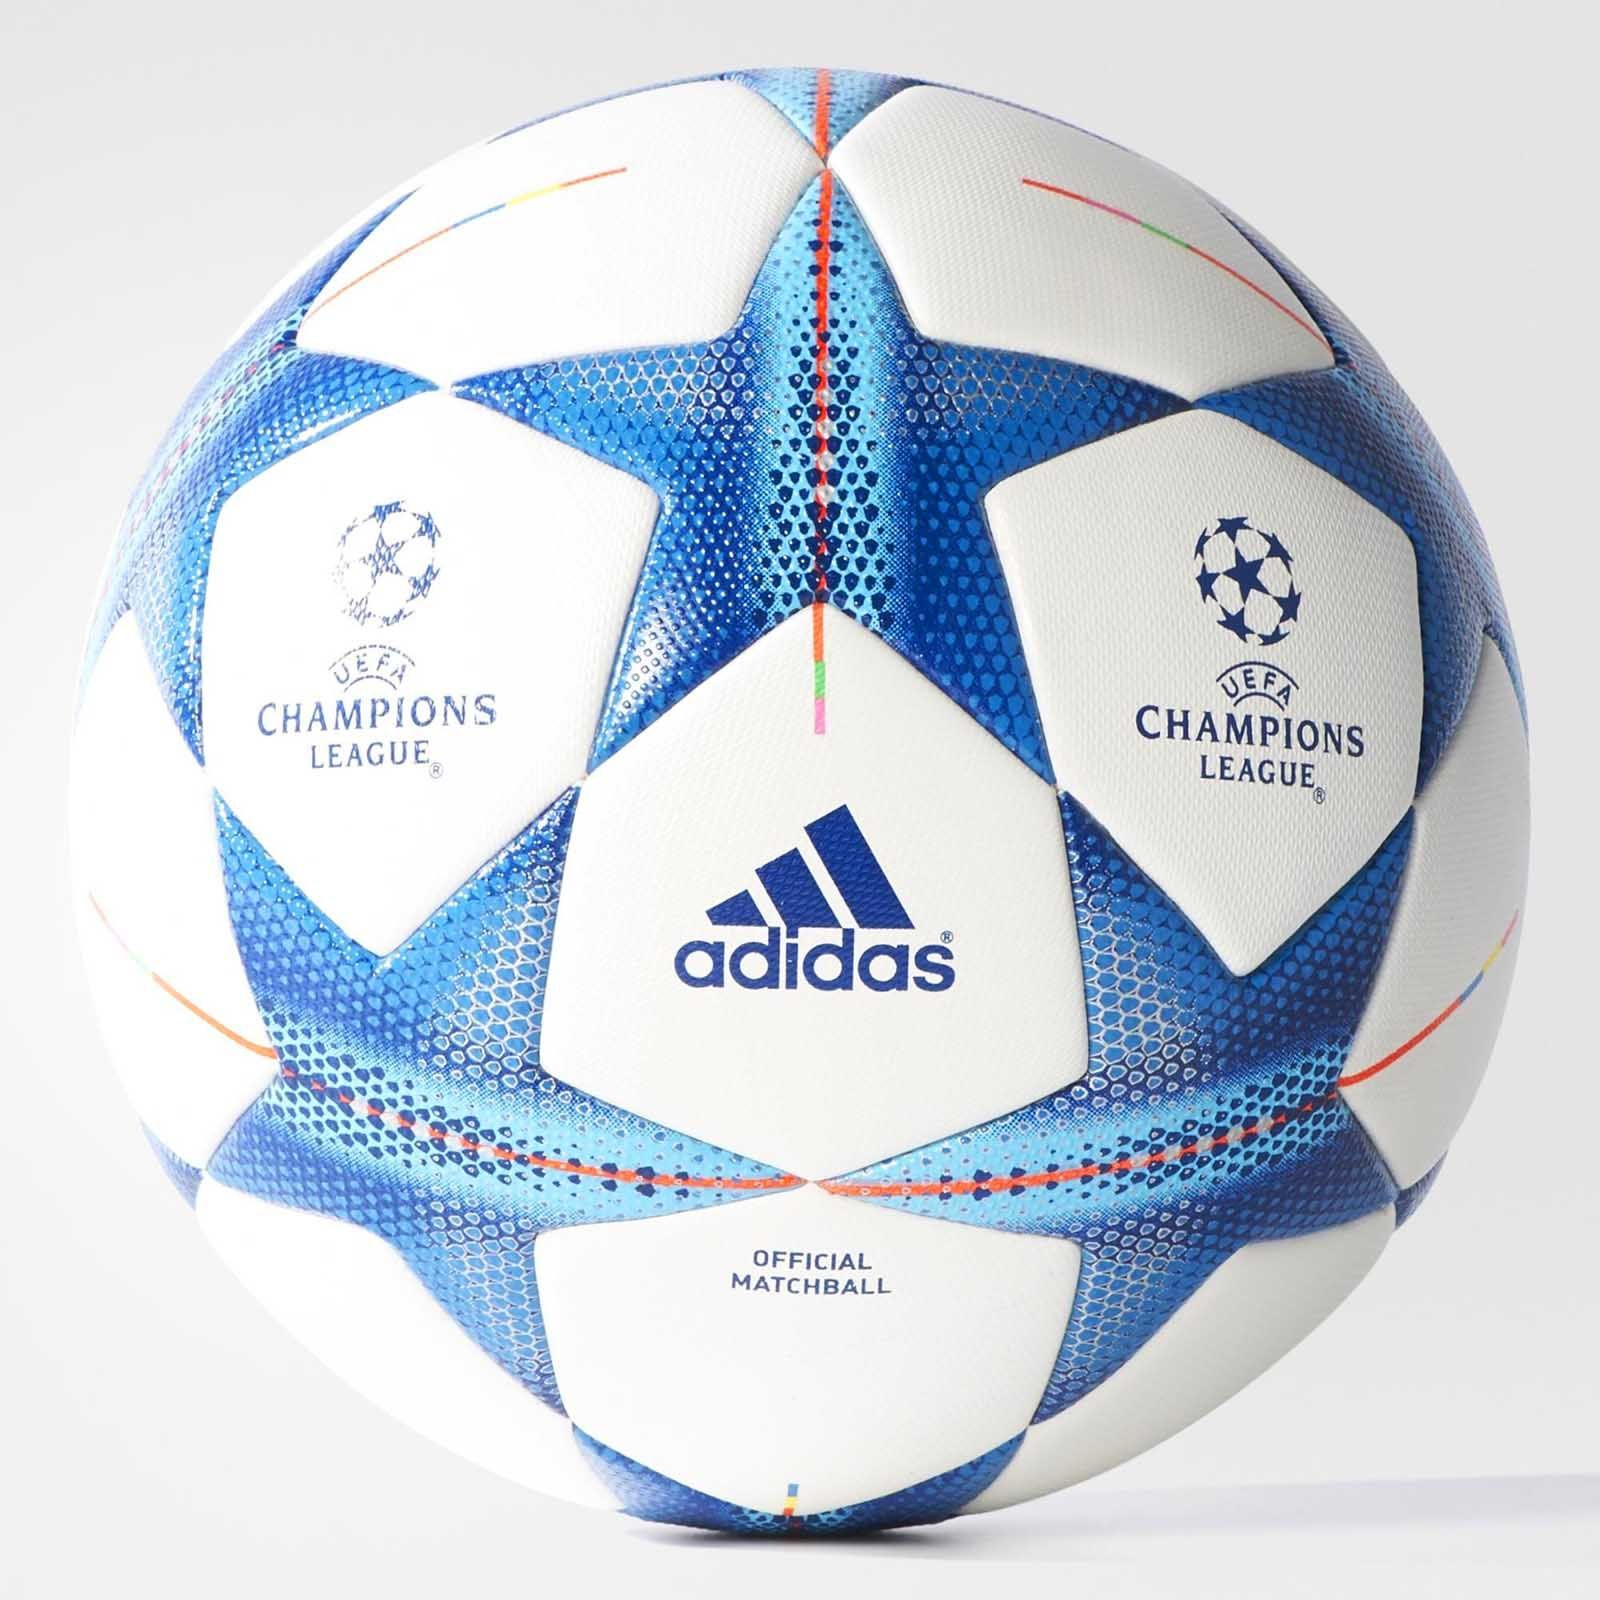 Adidas Finale 2015 15-16 Champions League Ball Released - Footy Headlines a45e8f179742c